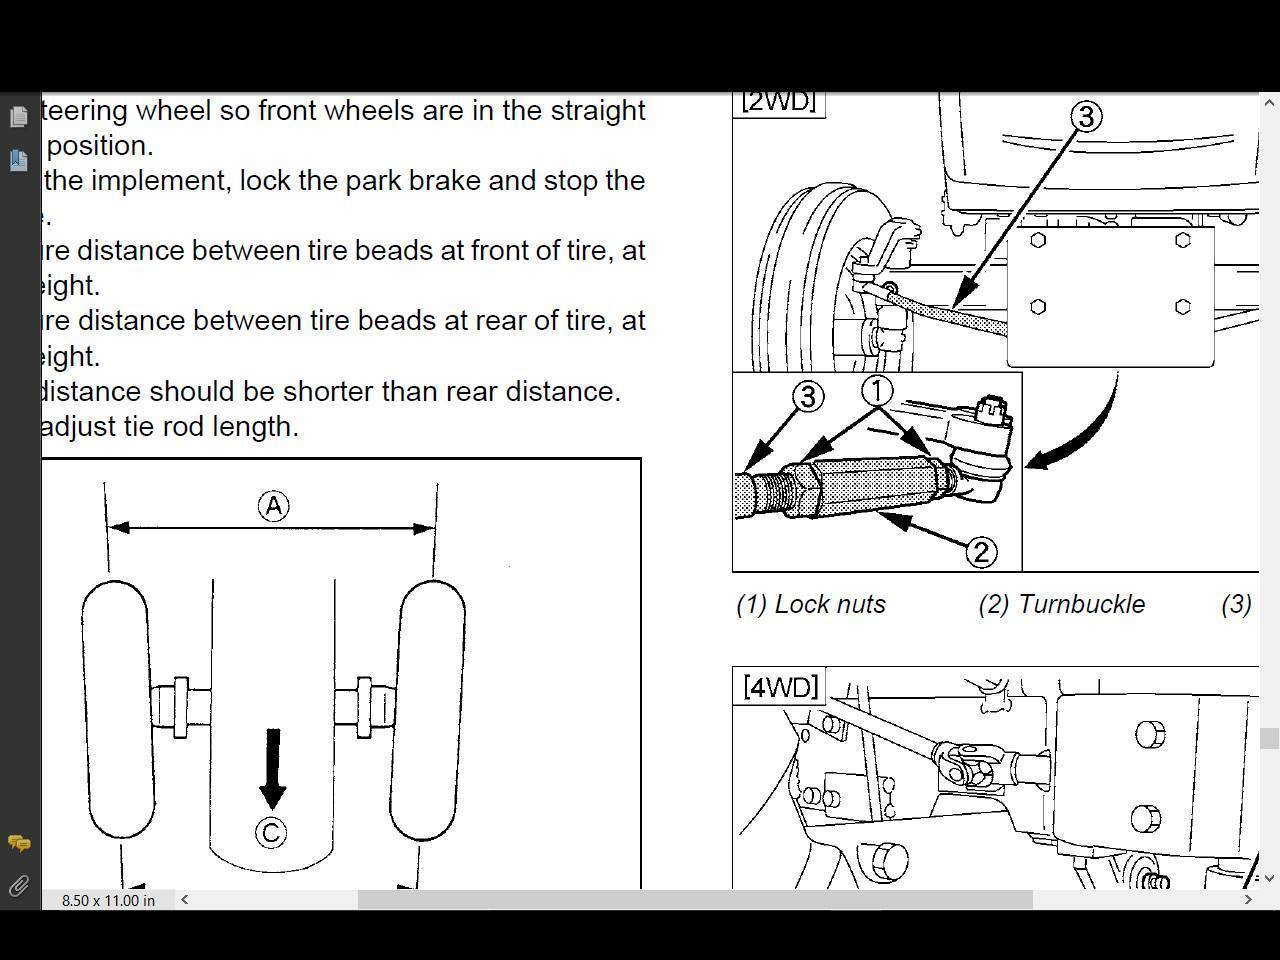 Electrical Wiring Diagram Of 1992 Suzuki Vs800 Intruder For Us And Canada Part 1